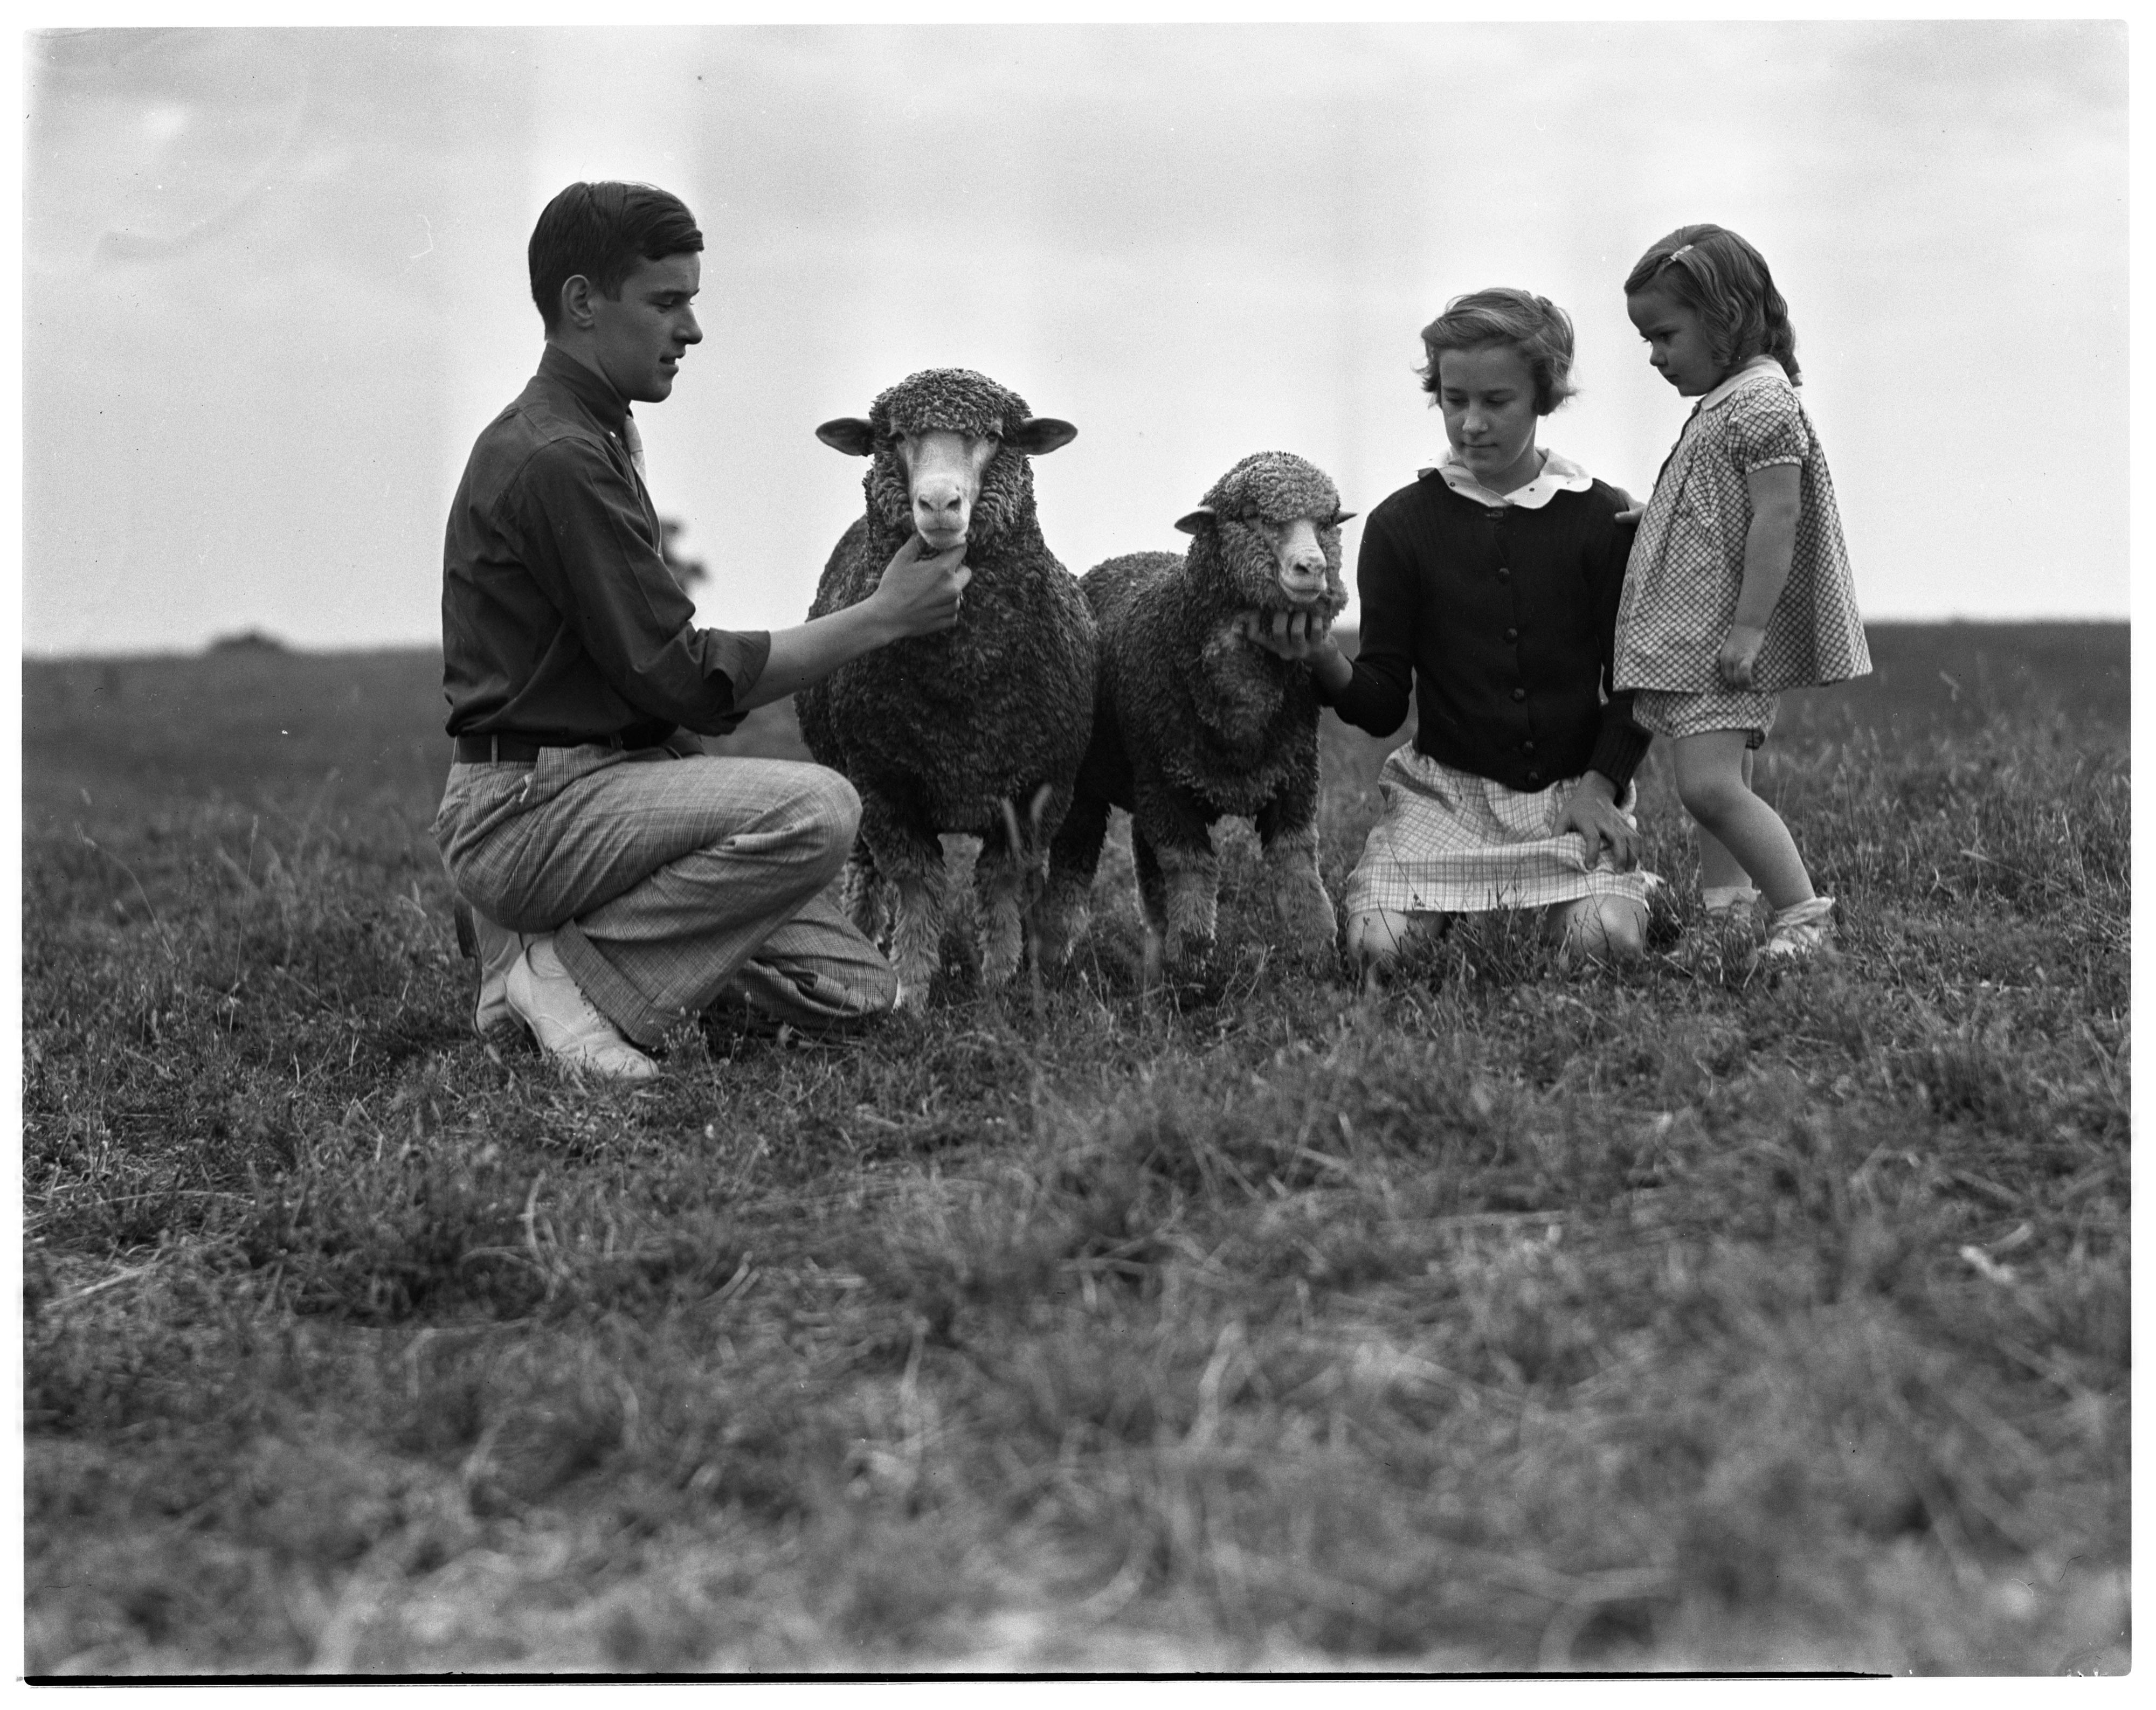 Robert Mast & Sisters With Champion Sheep, September 1937 image